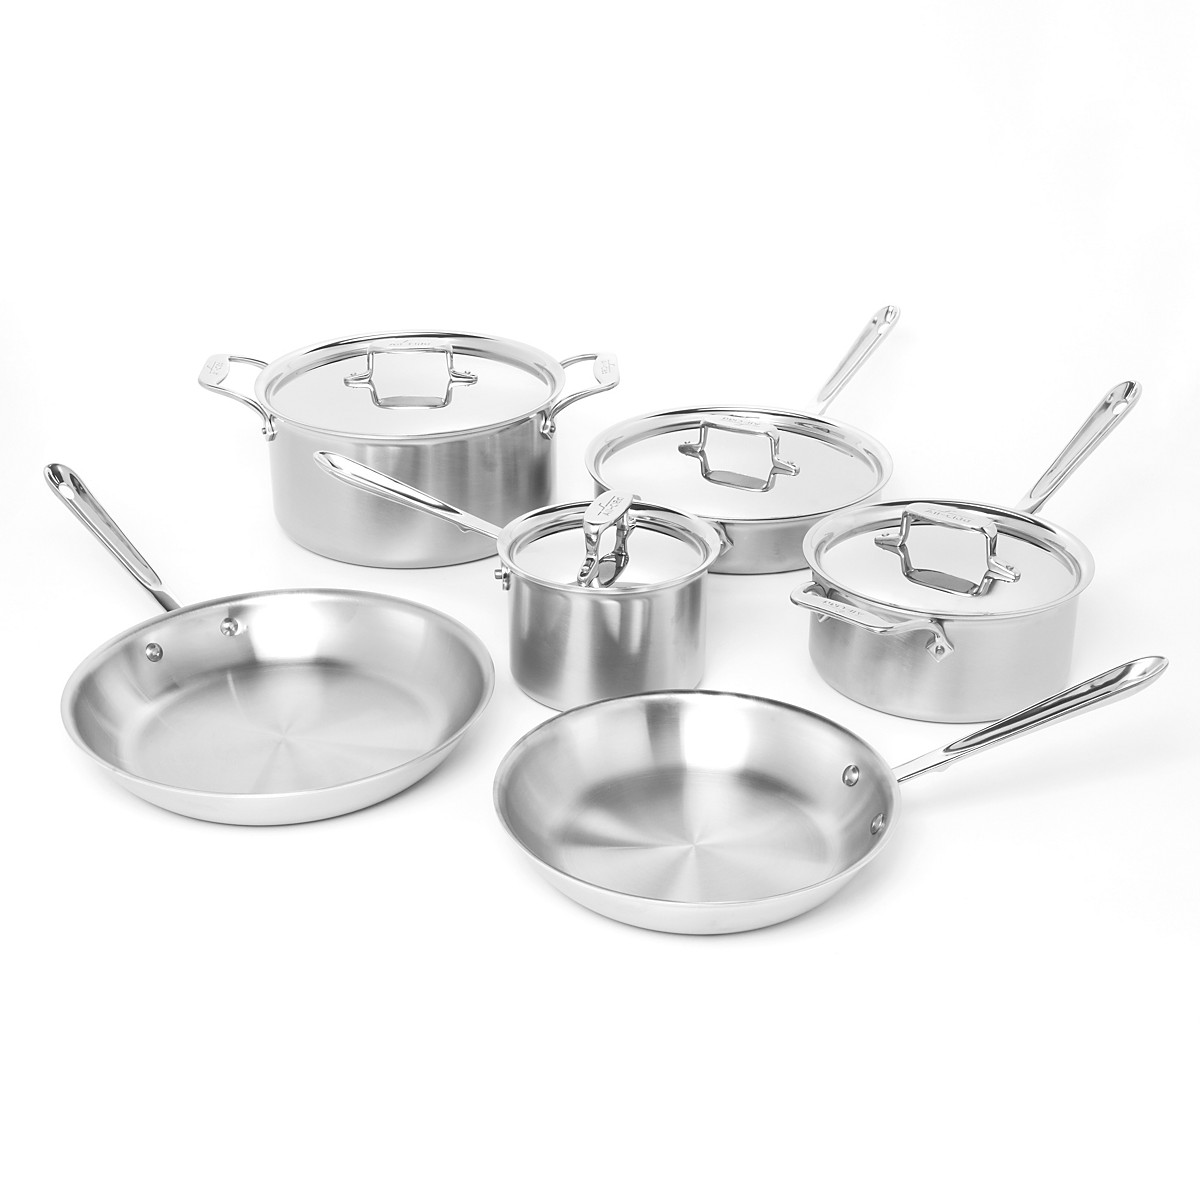 All-Clad - 10 Piece Cookware Set